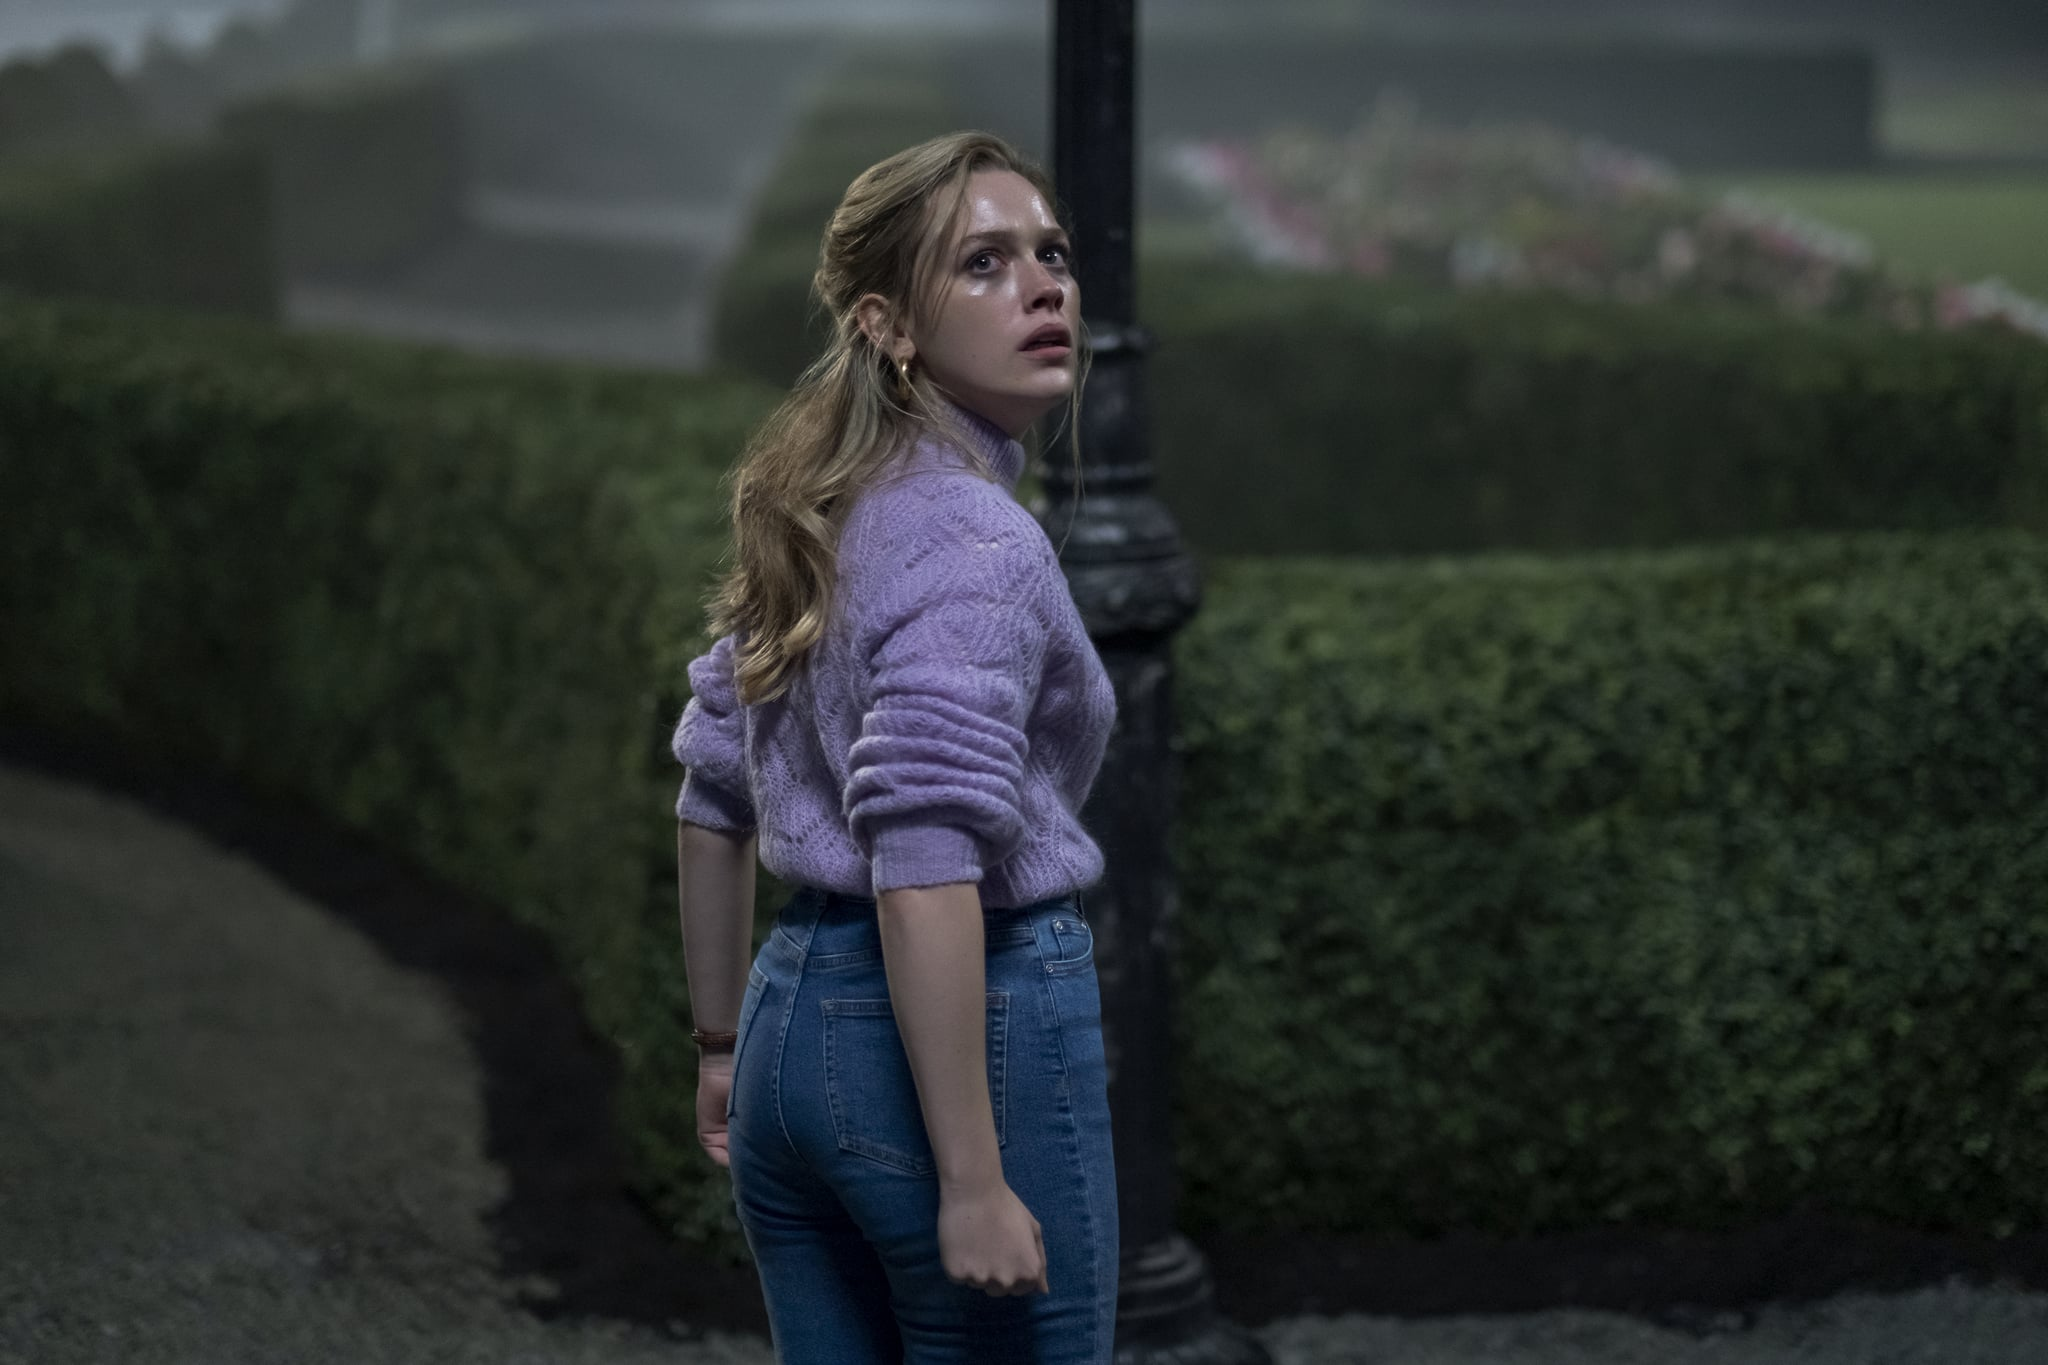 THE HAUNTING OF BLY MANOR (L to R) VICTORIA PEDRETTI as DANI in THE HAUNTING OF BLY MANOR Cr. EIKE SCHROTER/NETFLIX  2020